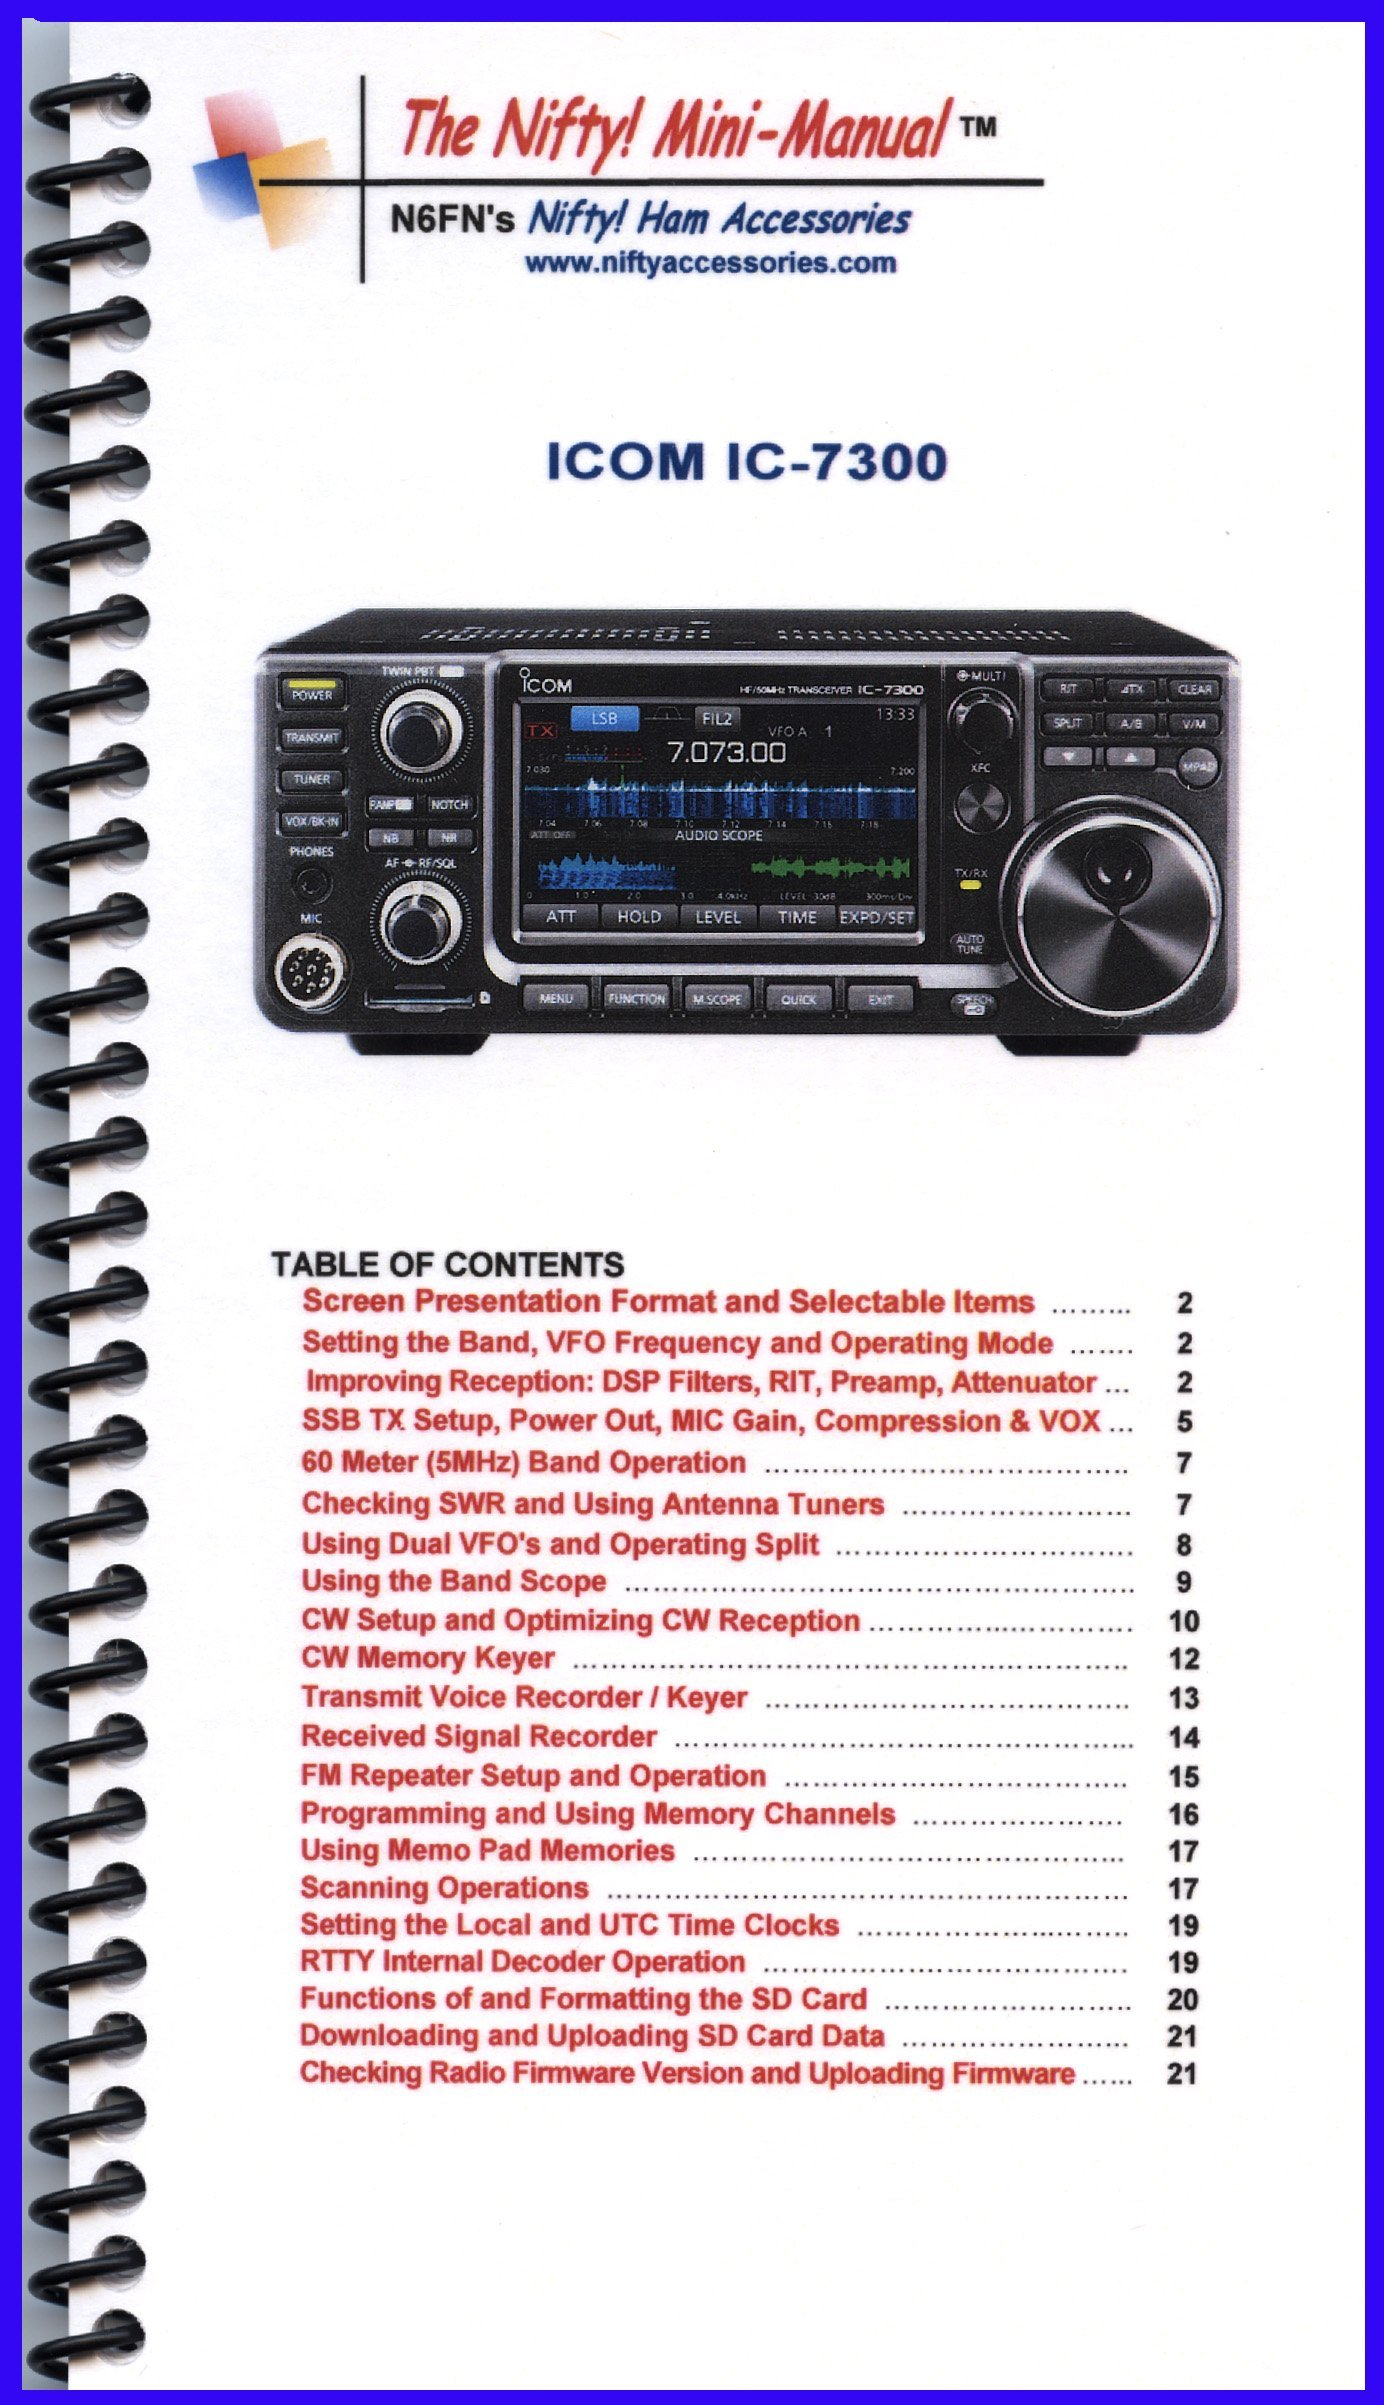 Icom IC-7300 Mini-Manual by Nifty Accessories: Nifty Accessories:  Amazon.com: Books